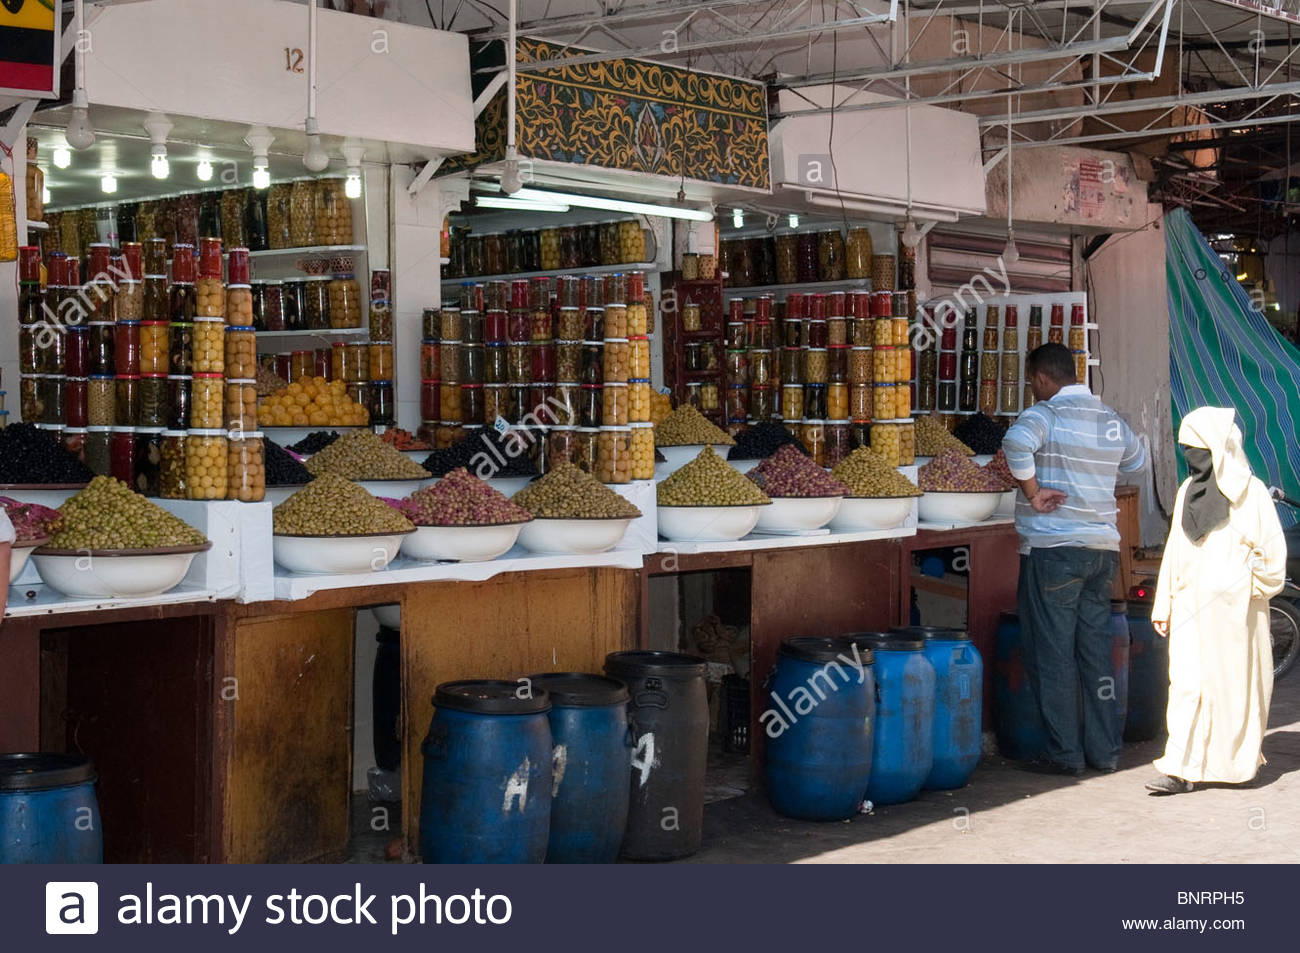 Olives and Preserved Lemons For Sale in the Meknes Morocco Market - Stock Image